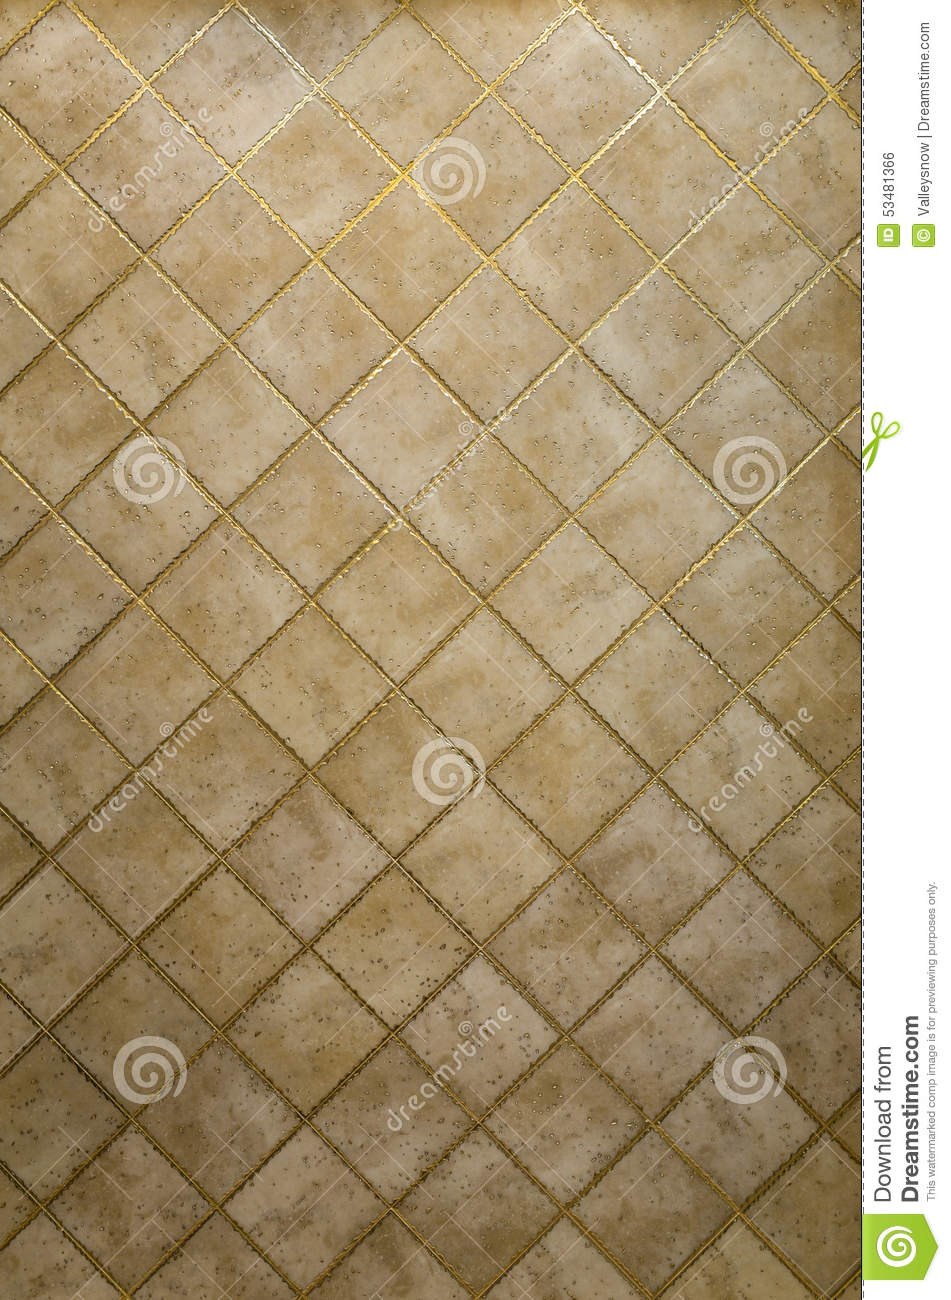 Tile surface stock photography 36199160 for Thread pool design pattern